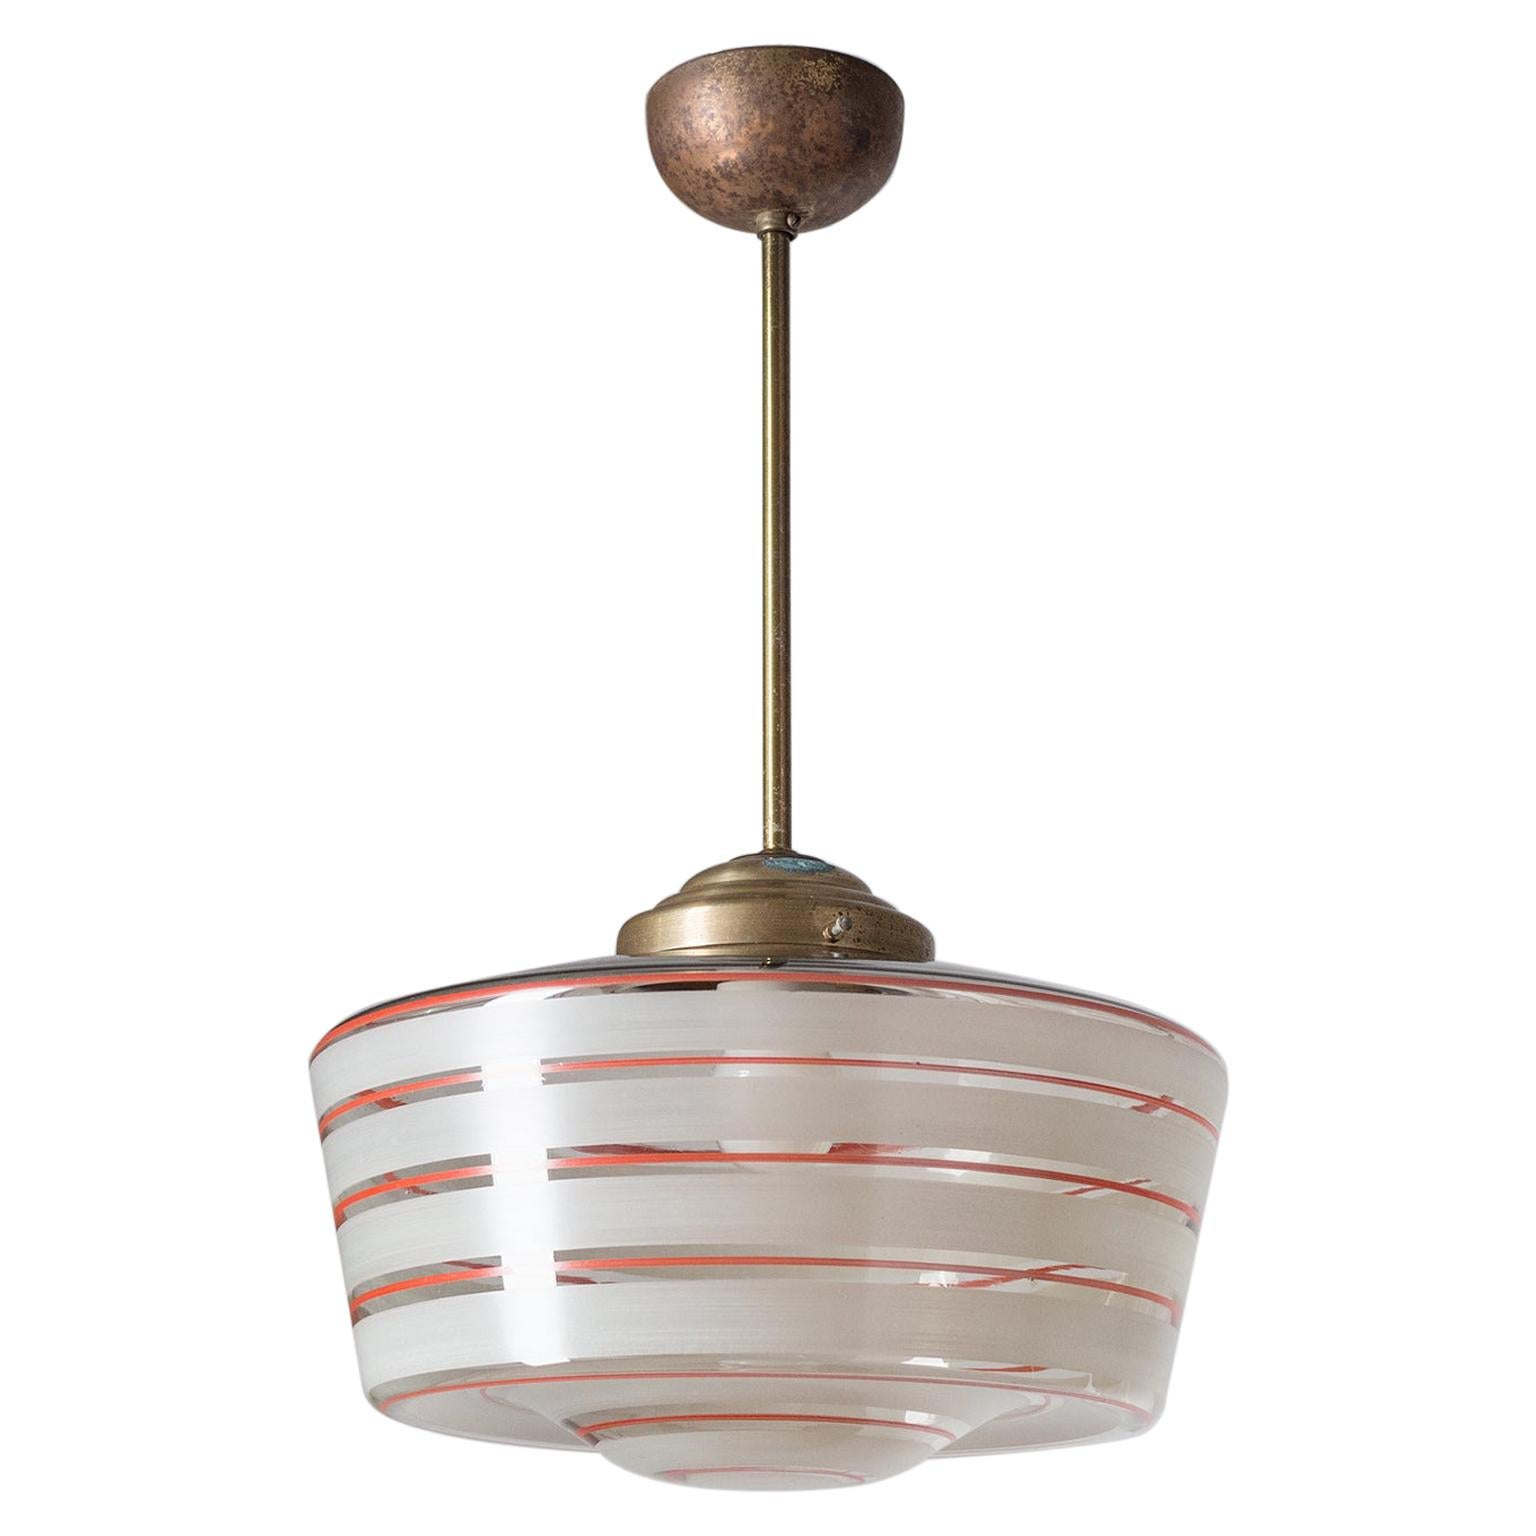 Art Deco Ceiling Light, circa 1930, Hand-Painted Glass and Brass